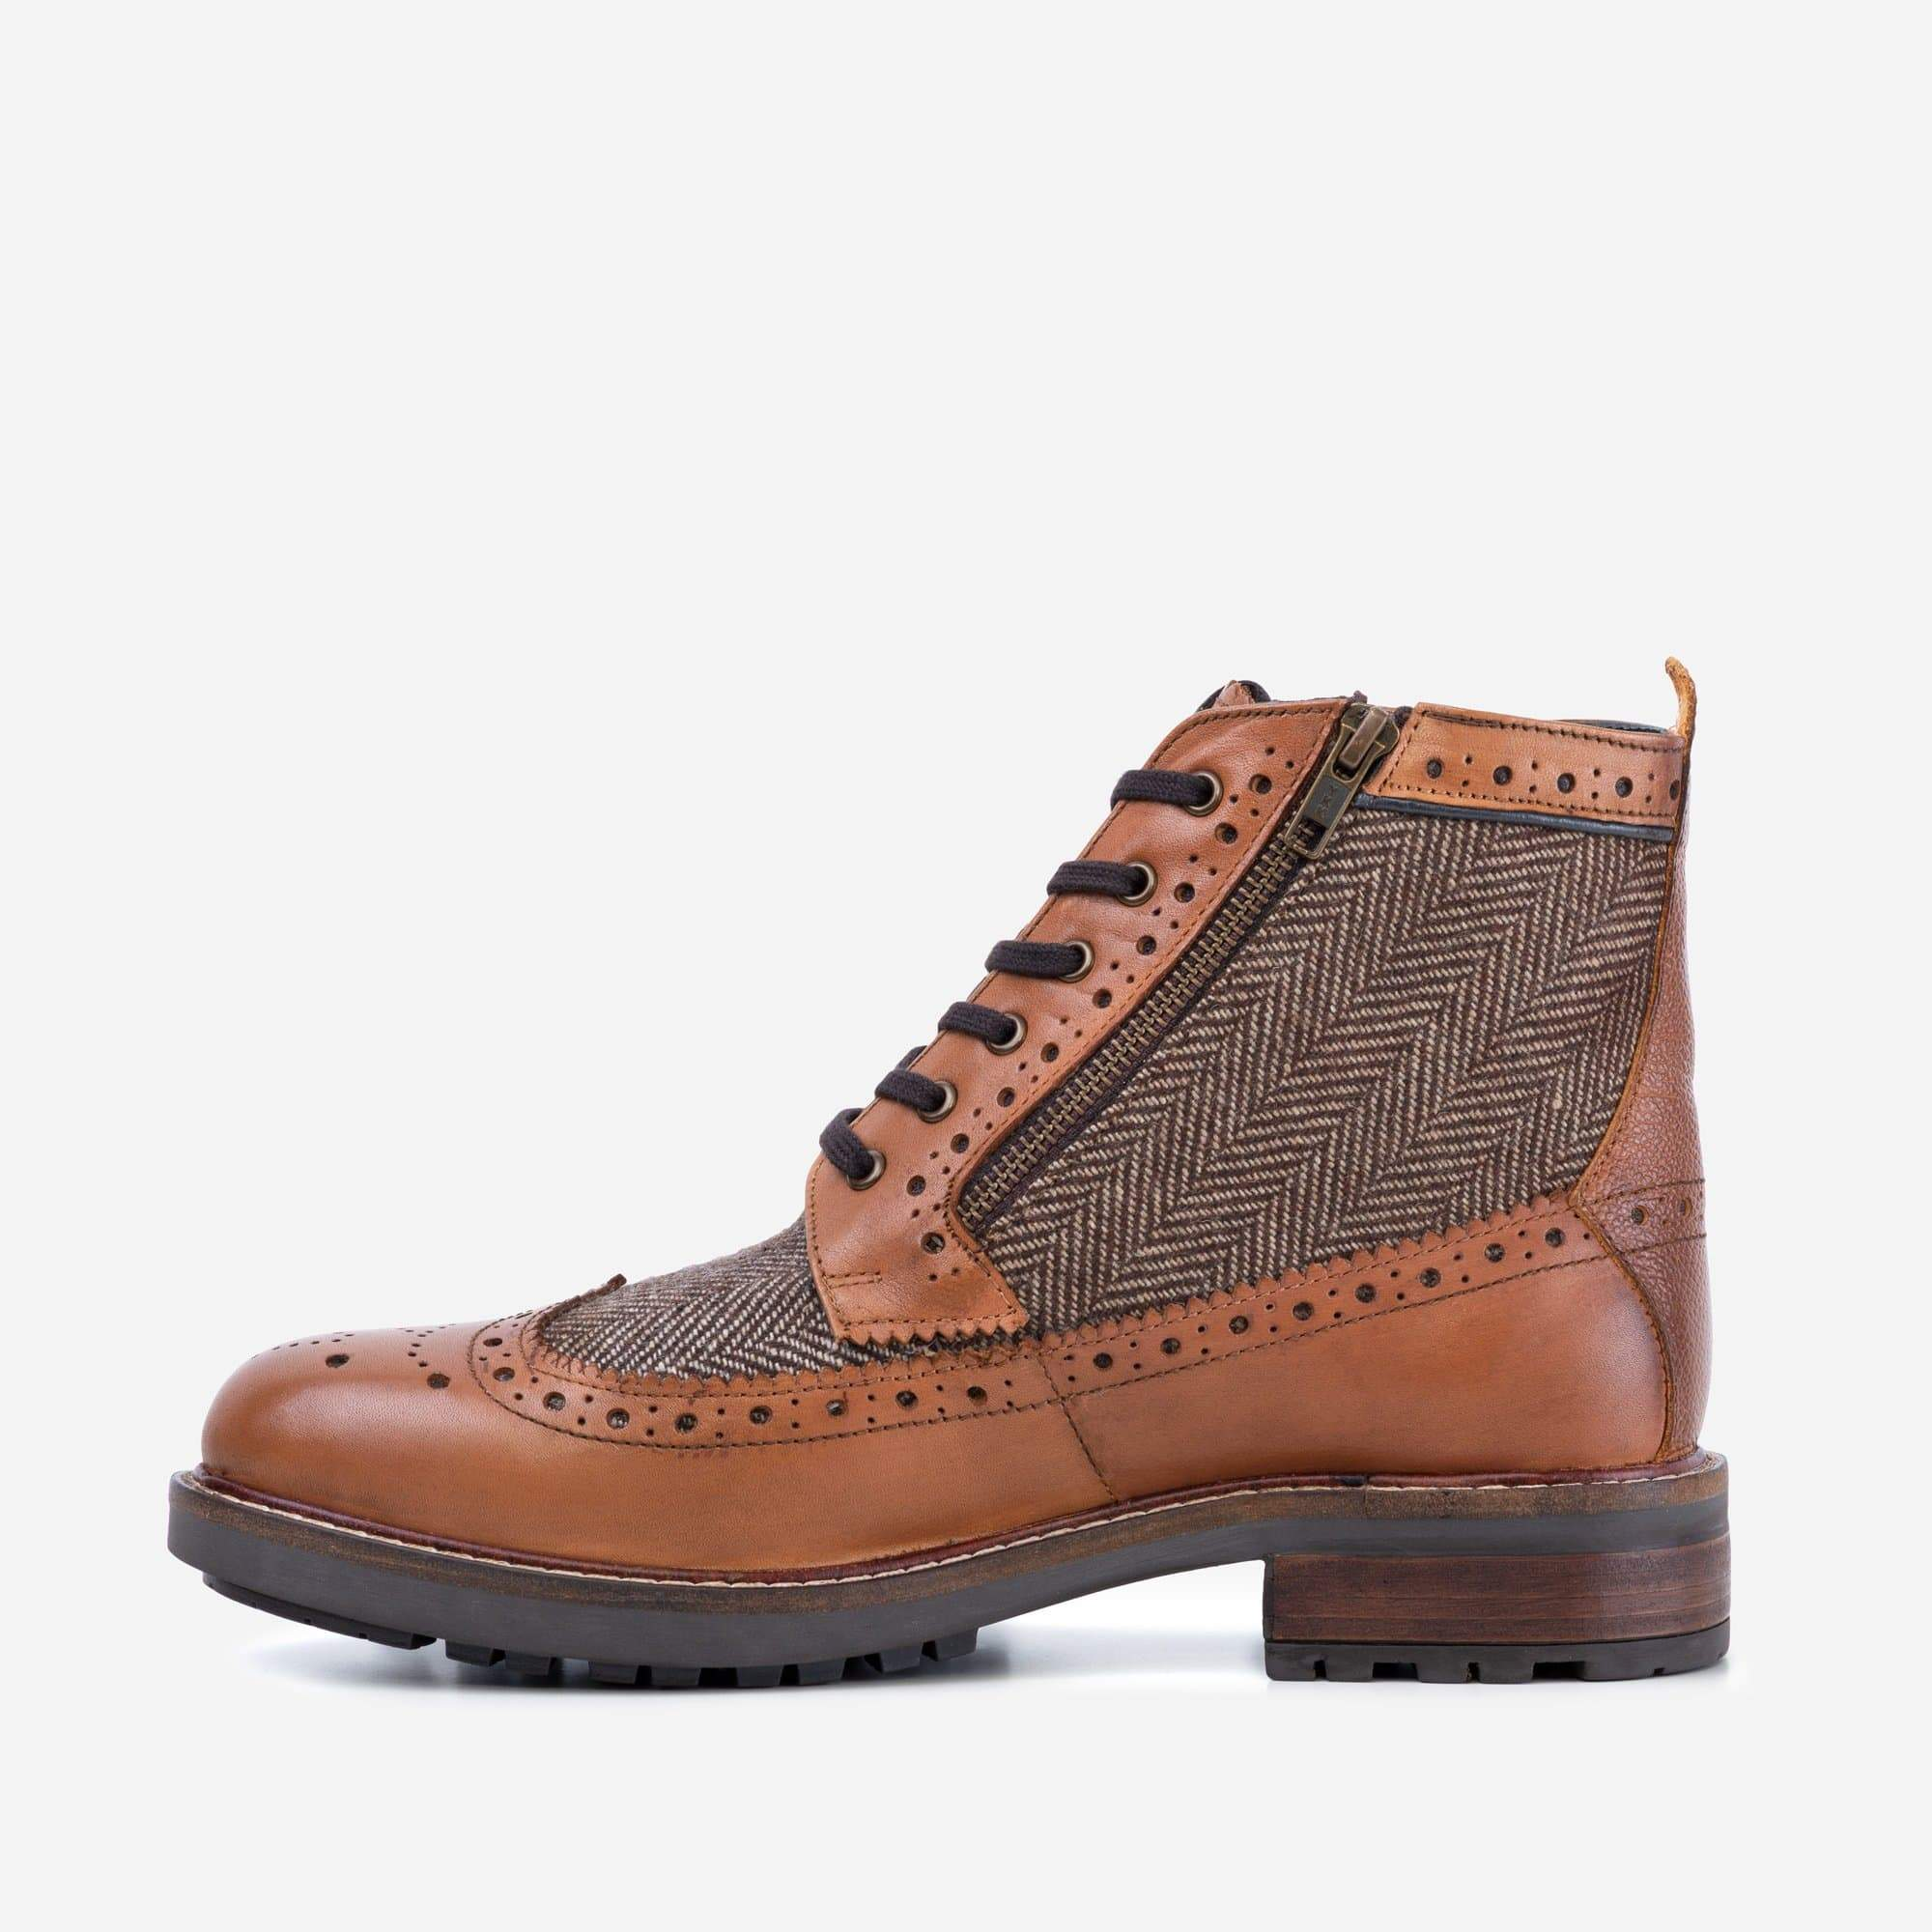 Goodwin Smith Footwear AW19 Sherwood Herringbone Tan Leather Brogue Boot